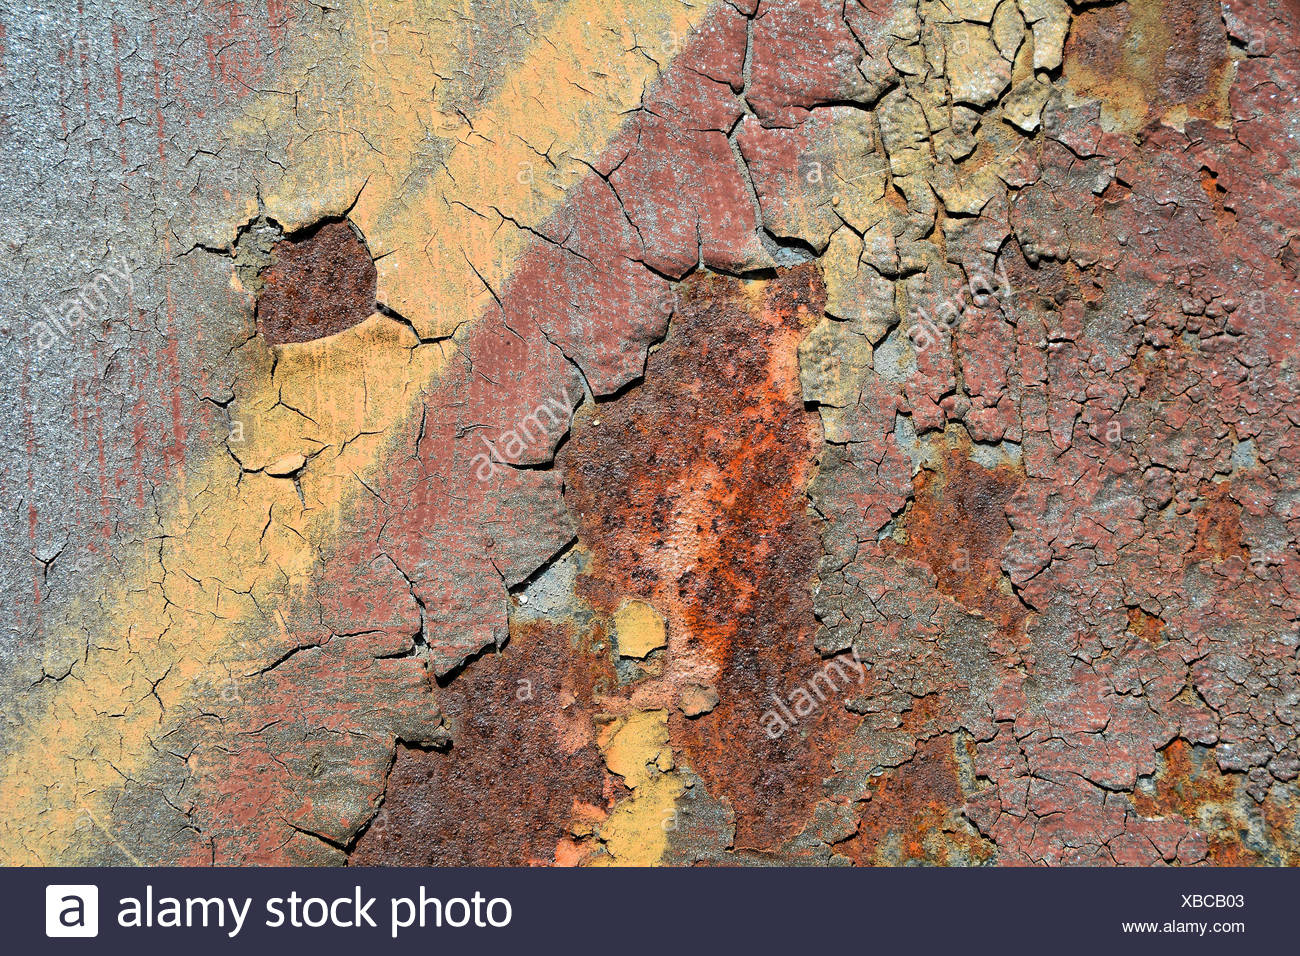 Rust on the surface of metal Stock Photo